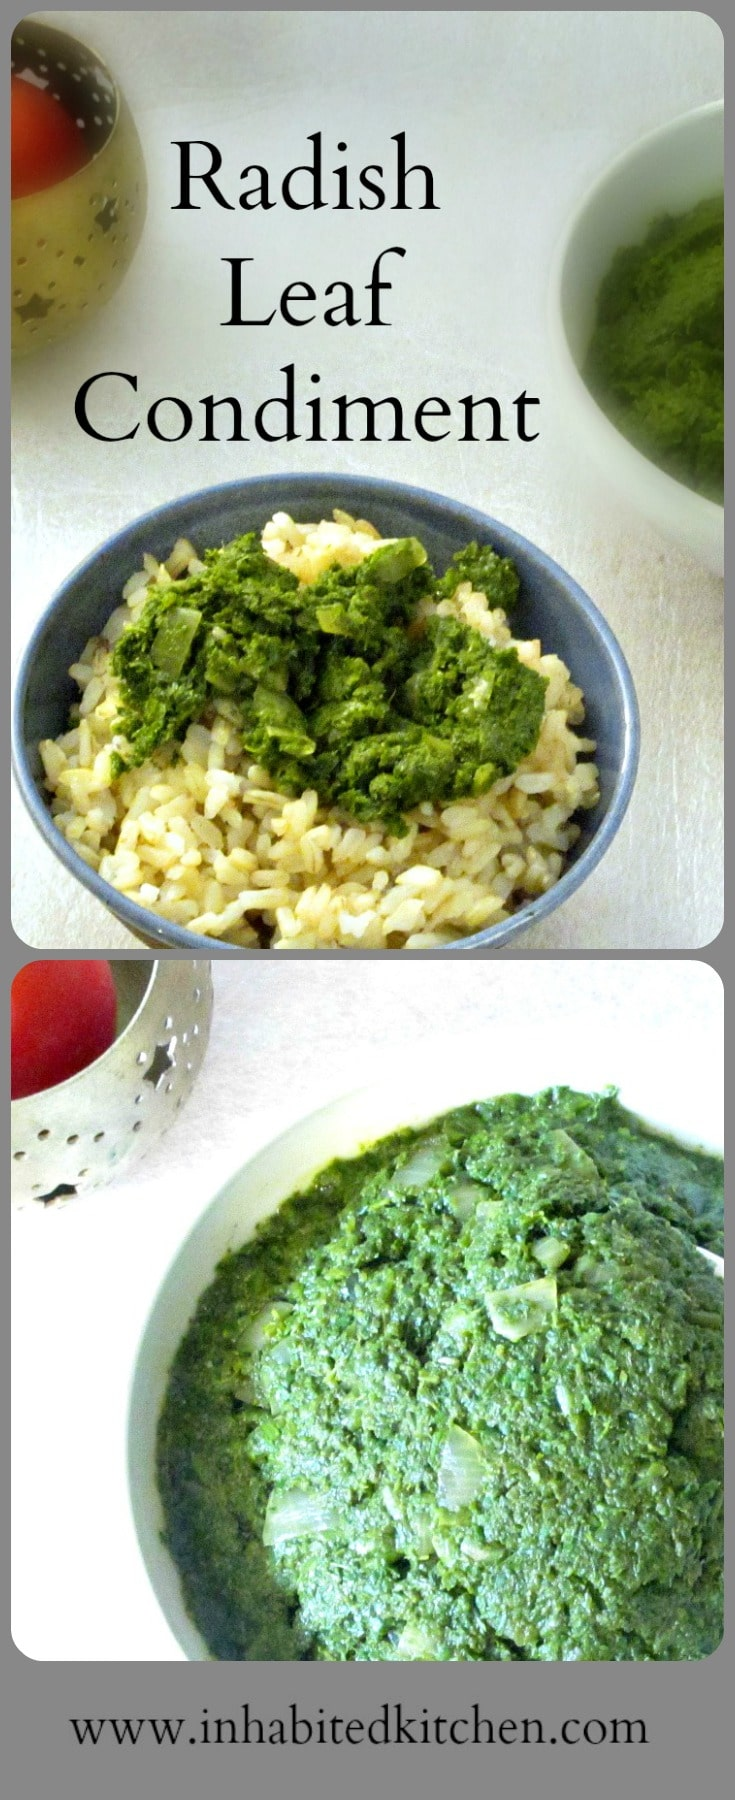 Don't toss those radish greens! You can make this Radish Leaf Condiment to add a shot of flavor to plain rice, meat, or beans, or any simple meal!